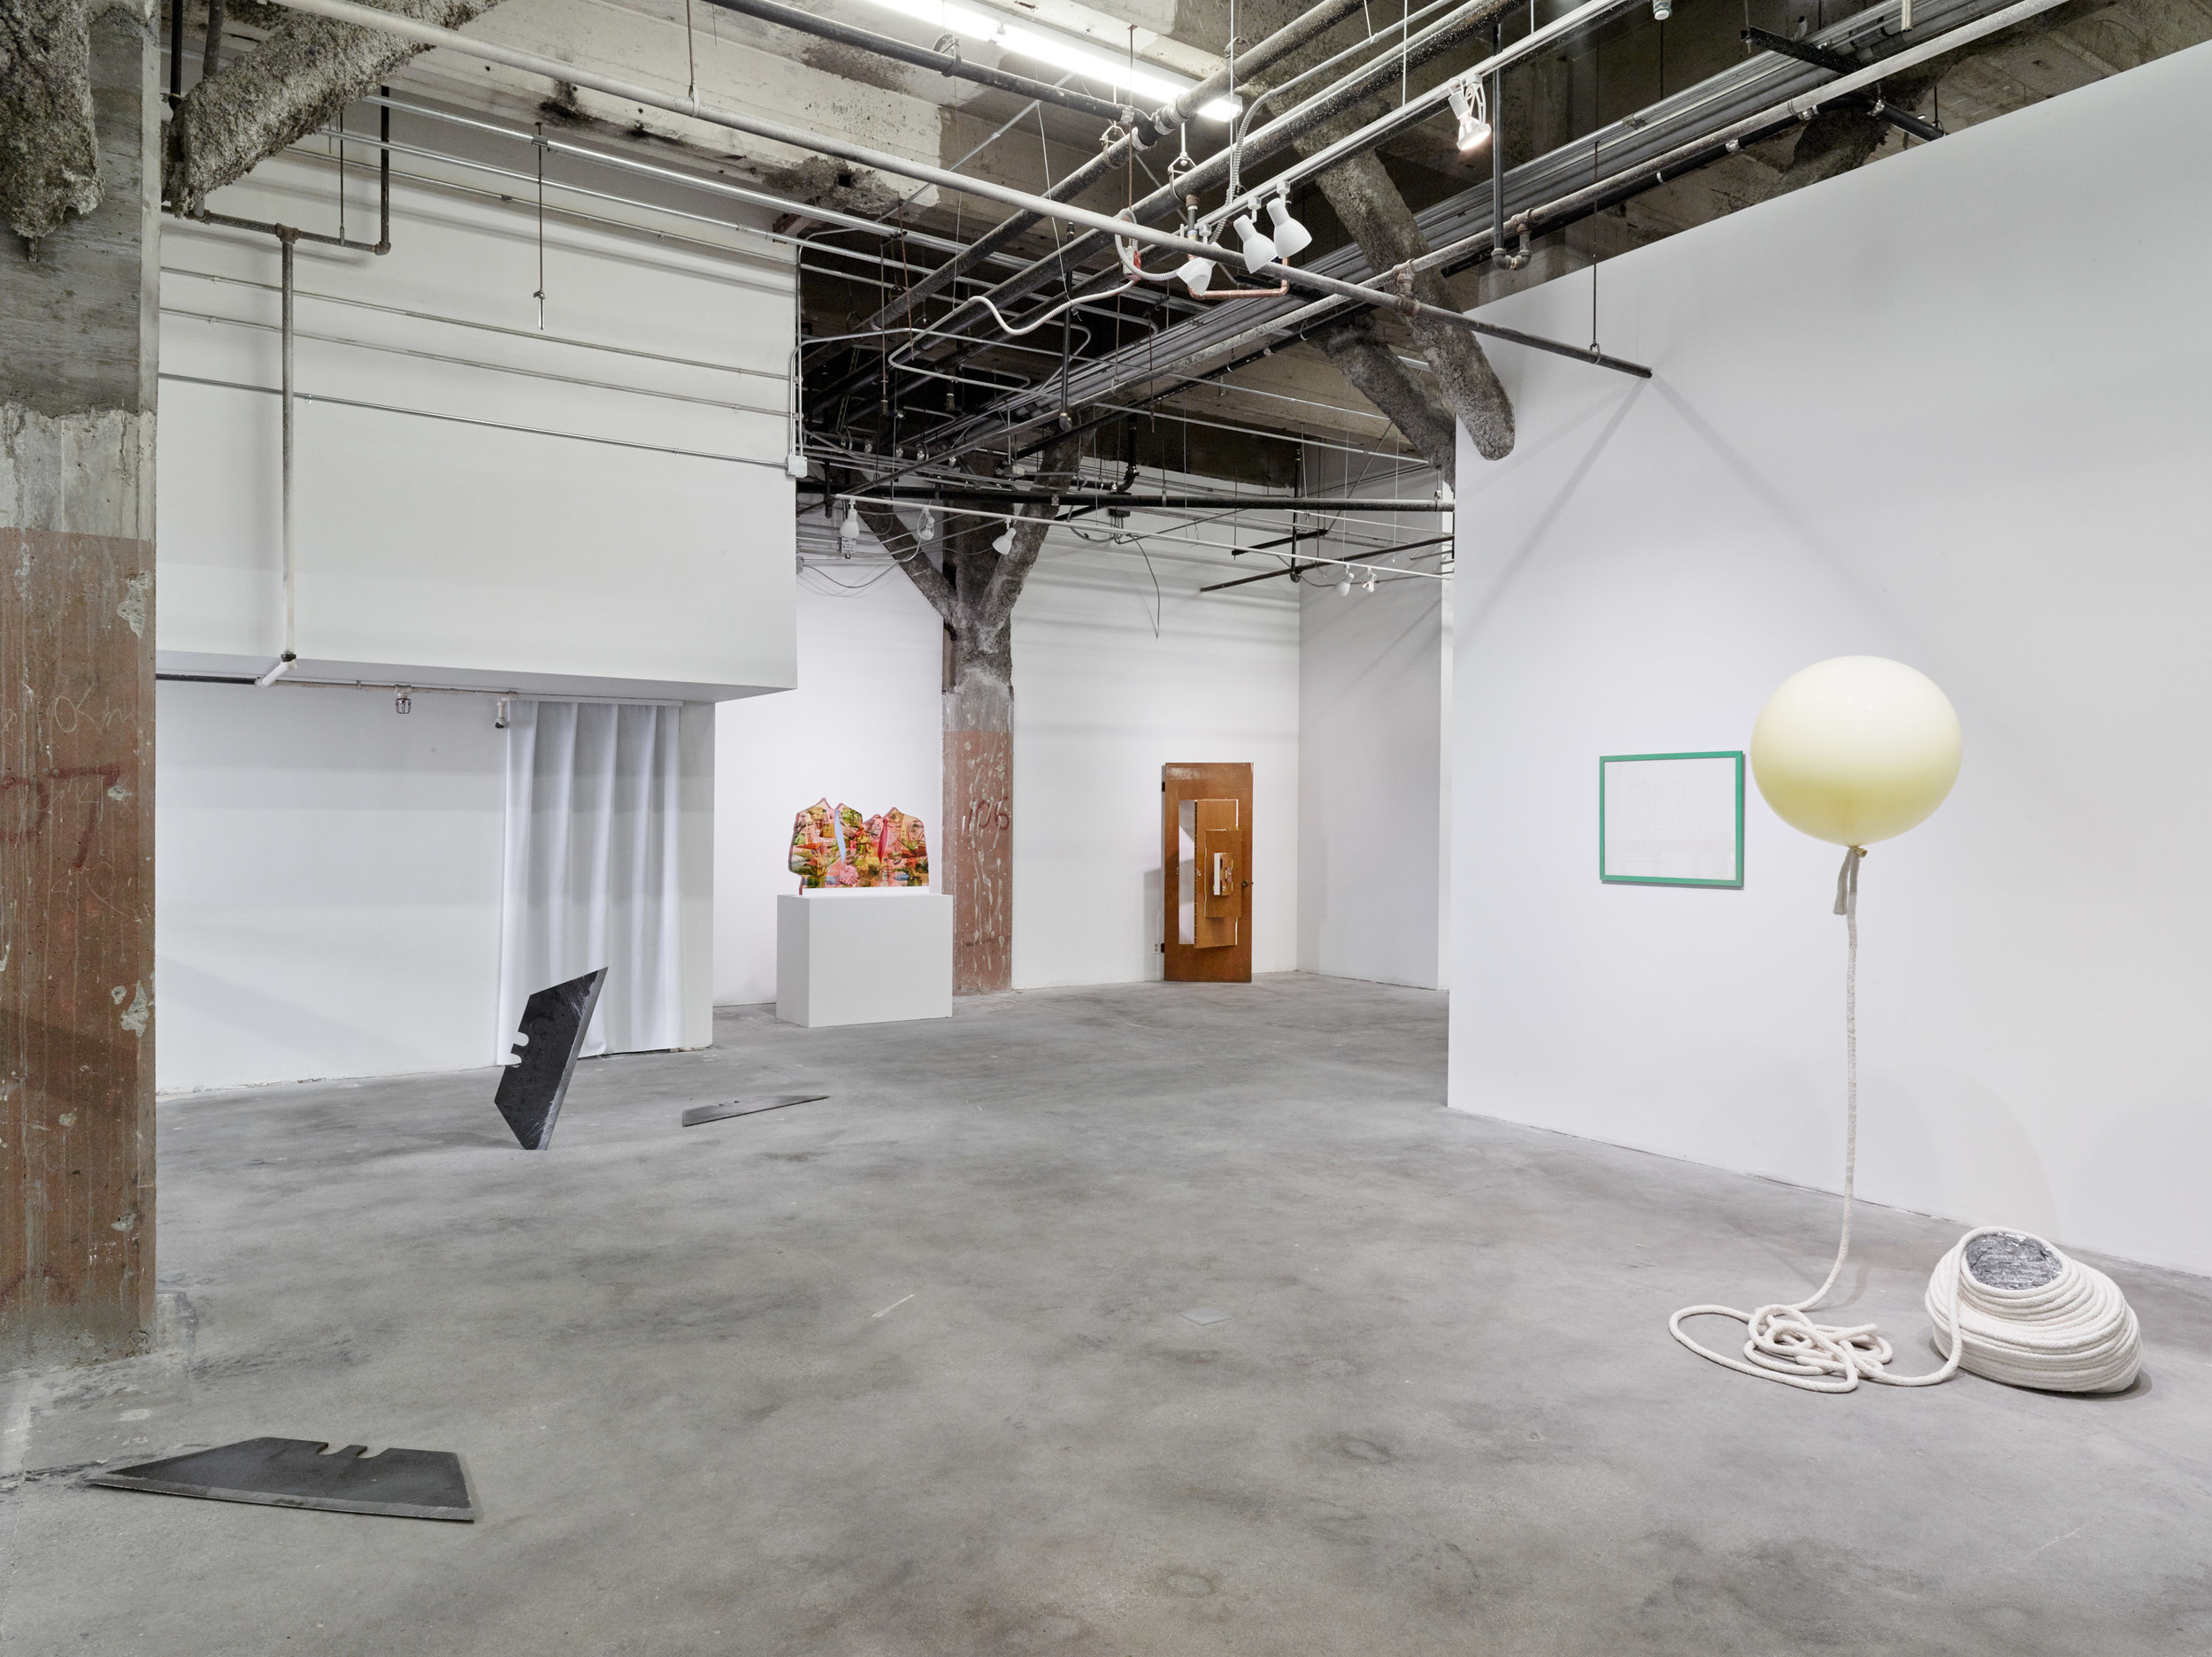 Installation view:   Flat Foldability  . From left to right: Joshua Callaghan, Anna Elise Johnson, Joshaua Callaghan, Guy de Cointet, Kathryn O'Halloran.